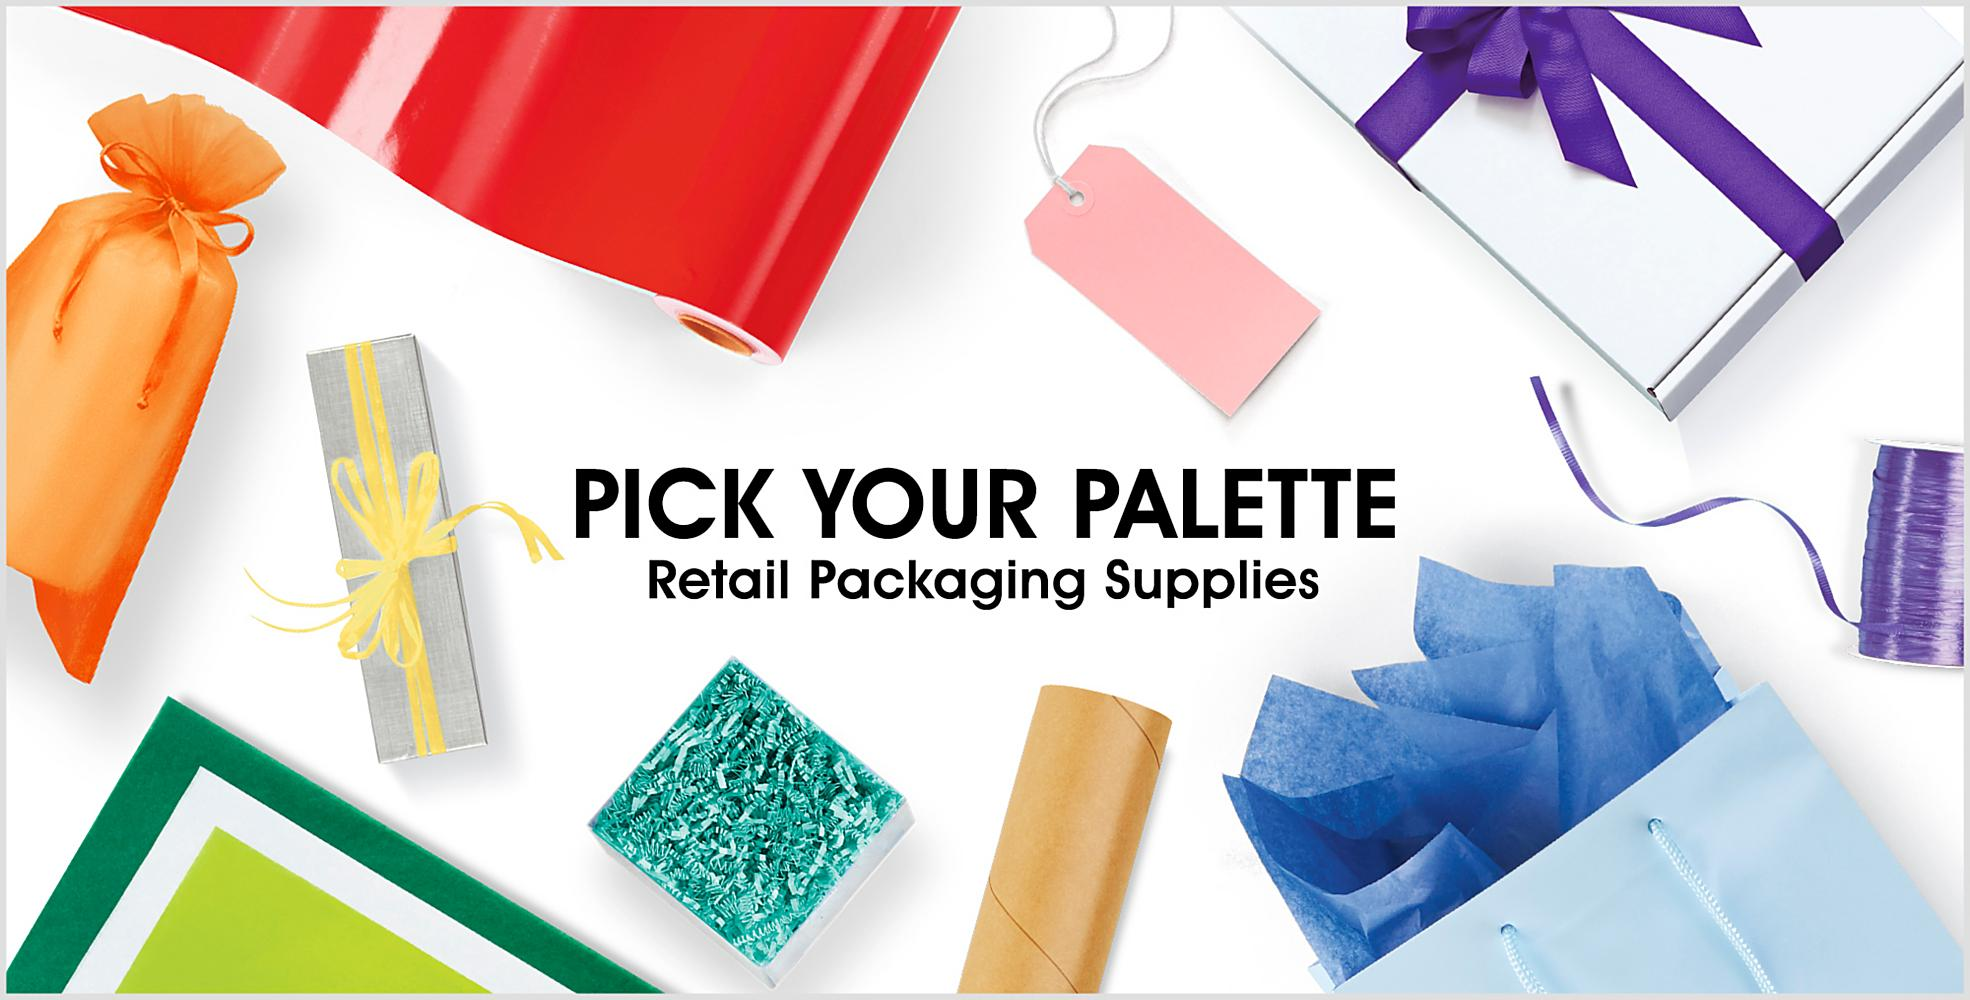 Pick Your Palette - Retail Packaging Supplies